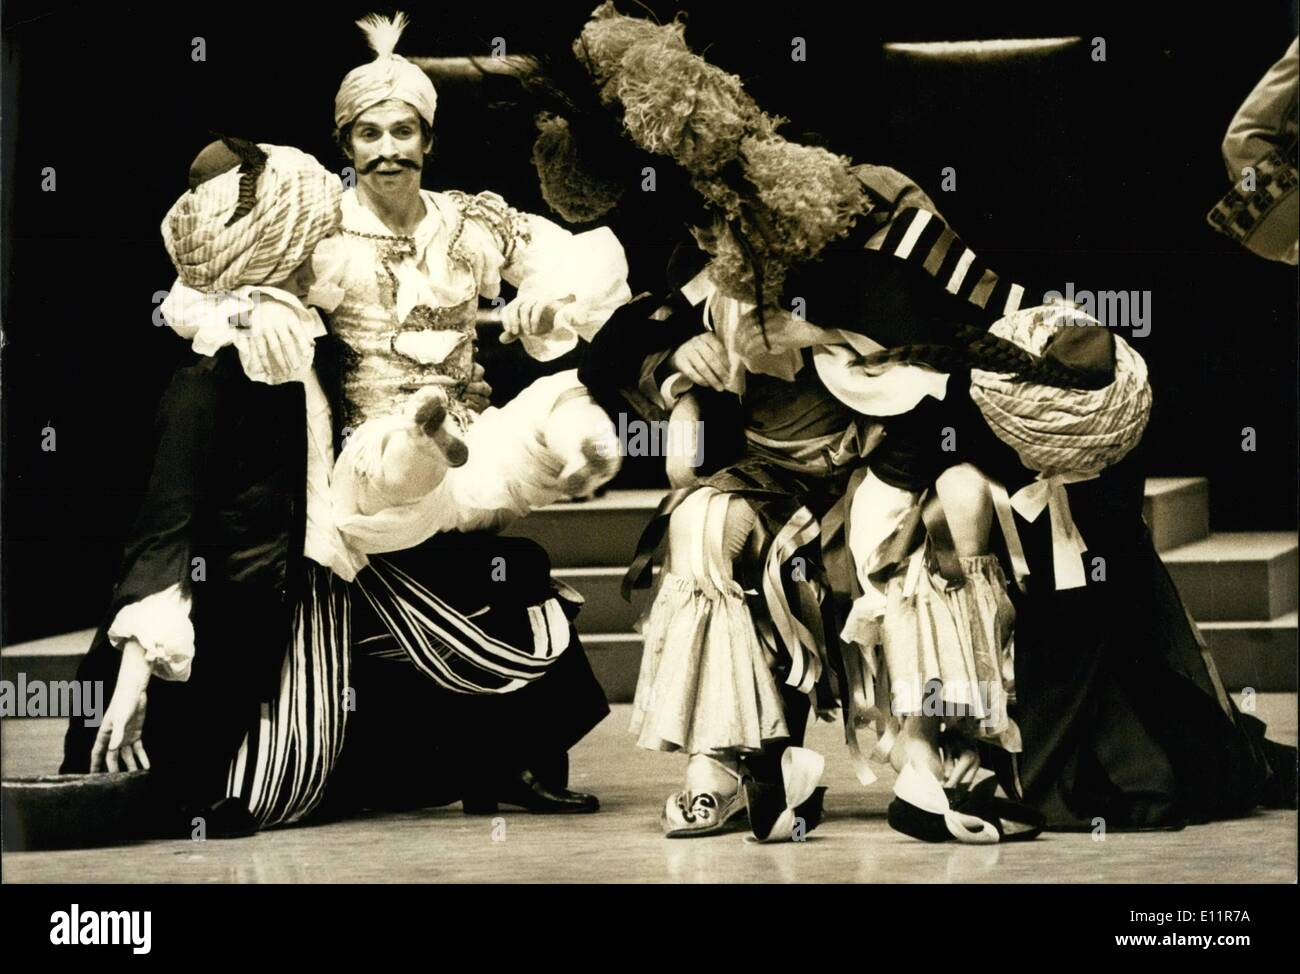 Dec. 12, 1979 - After injuring his left foot and being out of the theater for a few weeks, Rudolf Nourrev is returning to the Palais des Sports. The famous dancer will be performing in the opera ballet ''Le Bourgeois Gentilhomme,'' Moliere's famous comedy which has been tu - Stock Image